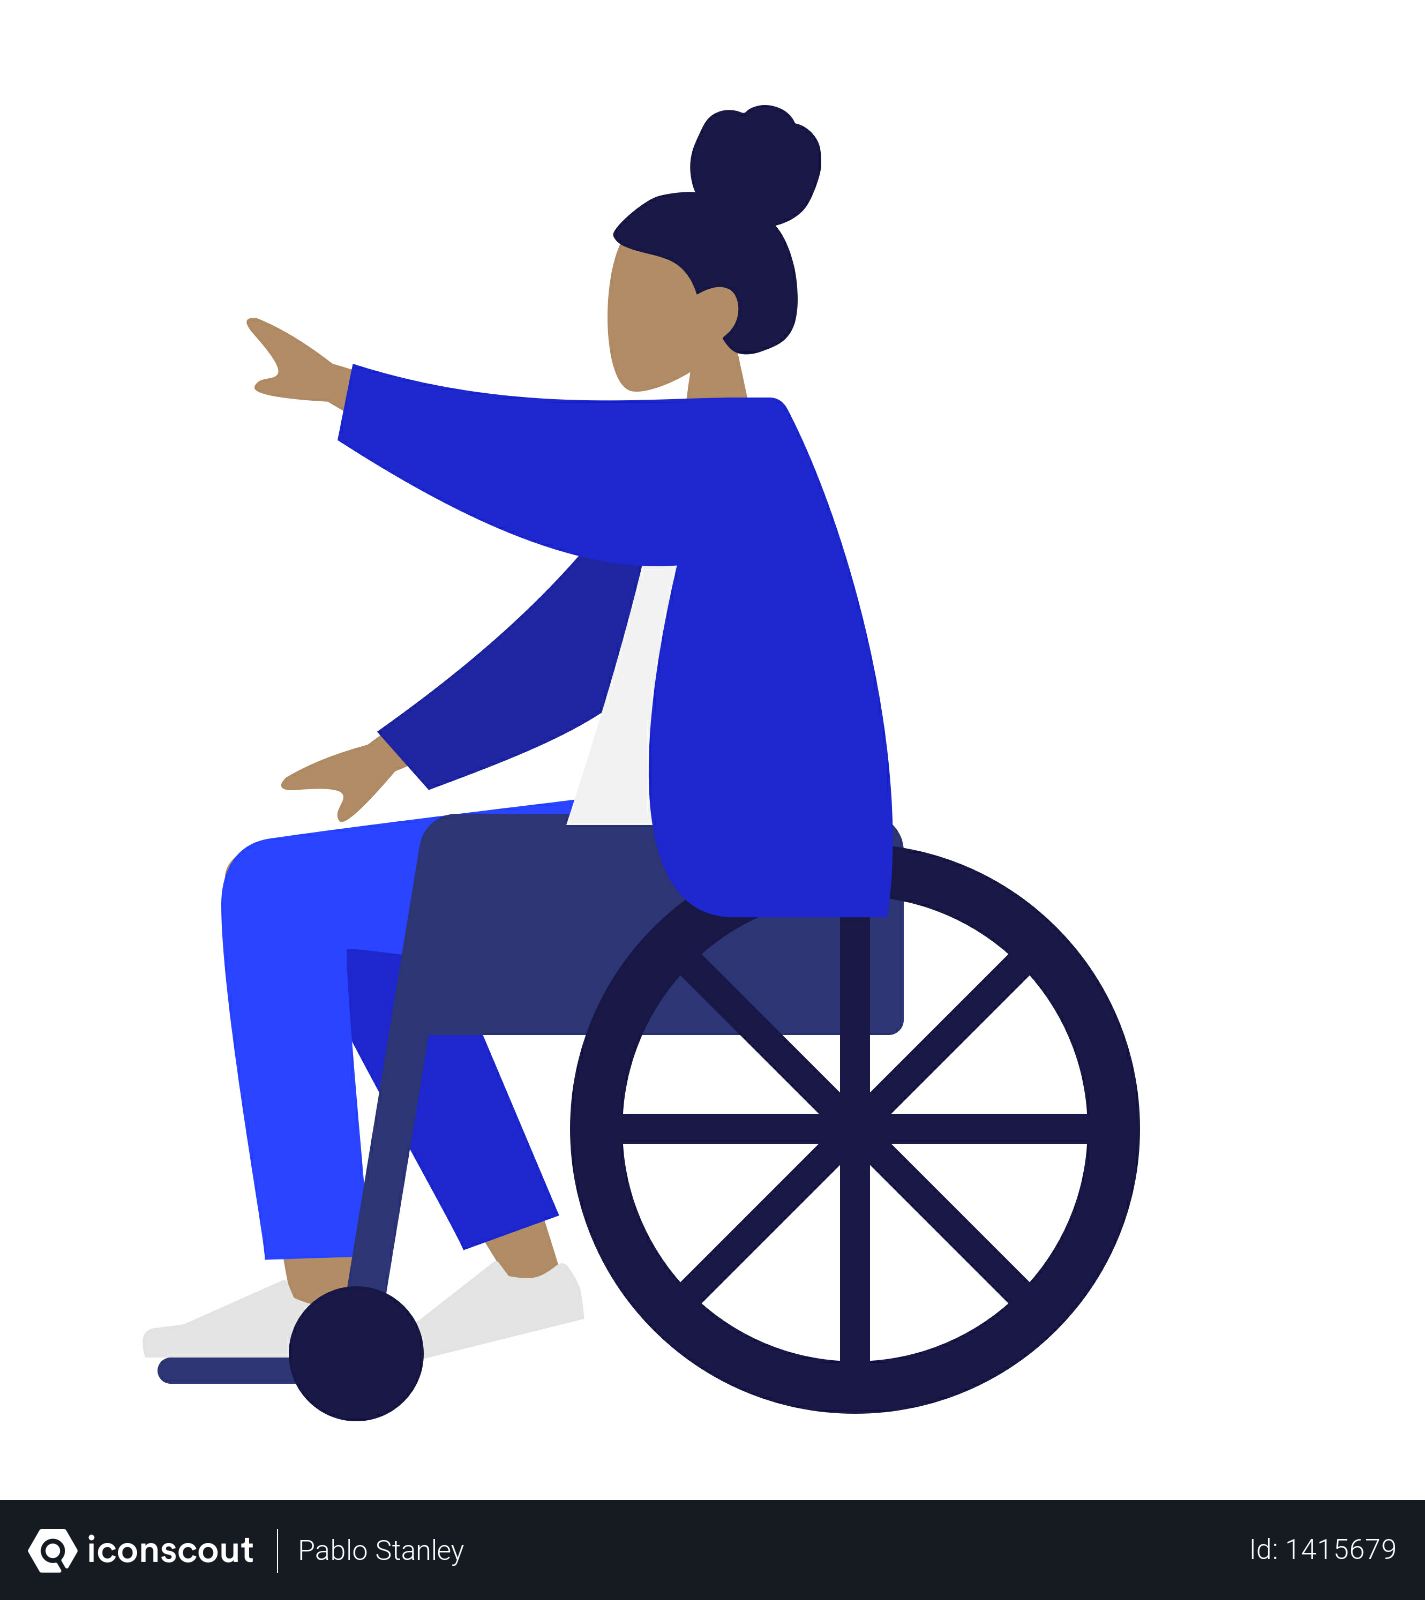 Free Handicapped Woman Sitting On Wheelchair Illustration Download In Png Vector Format Vector Illustration People People Illustration Illustration